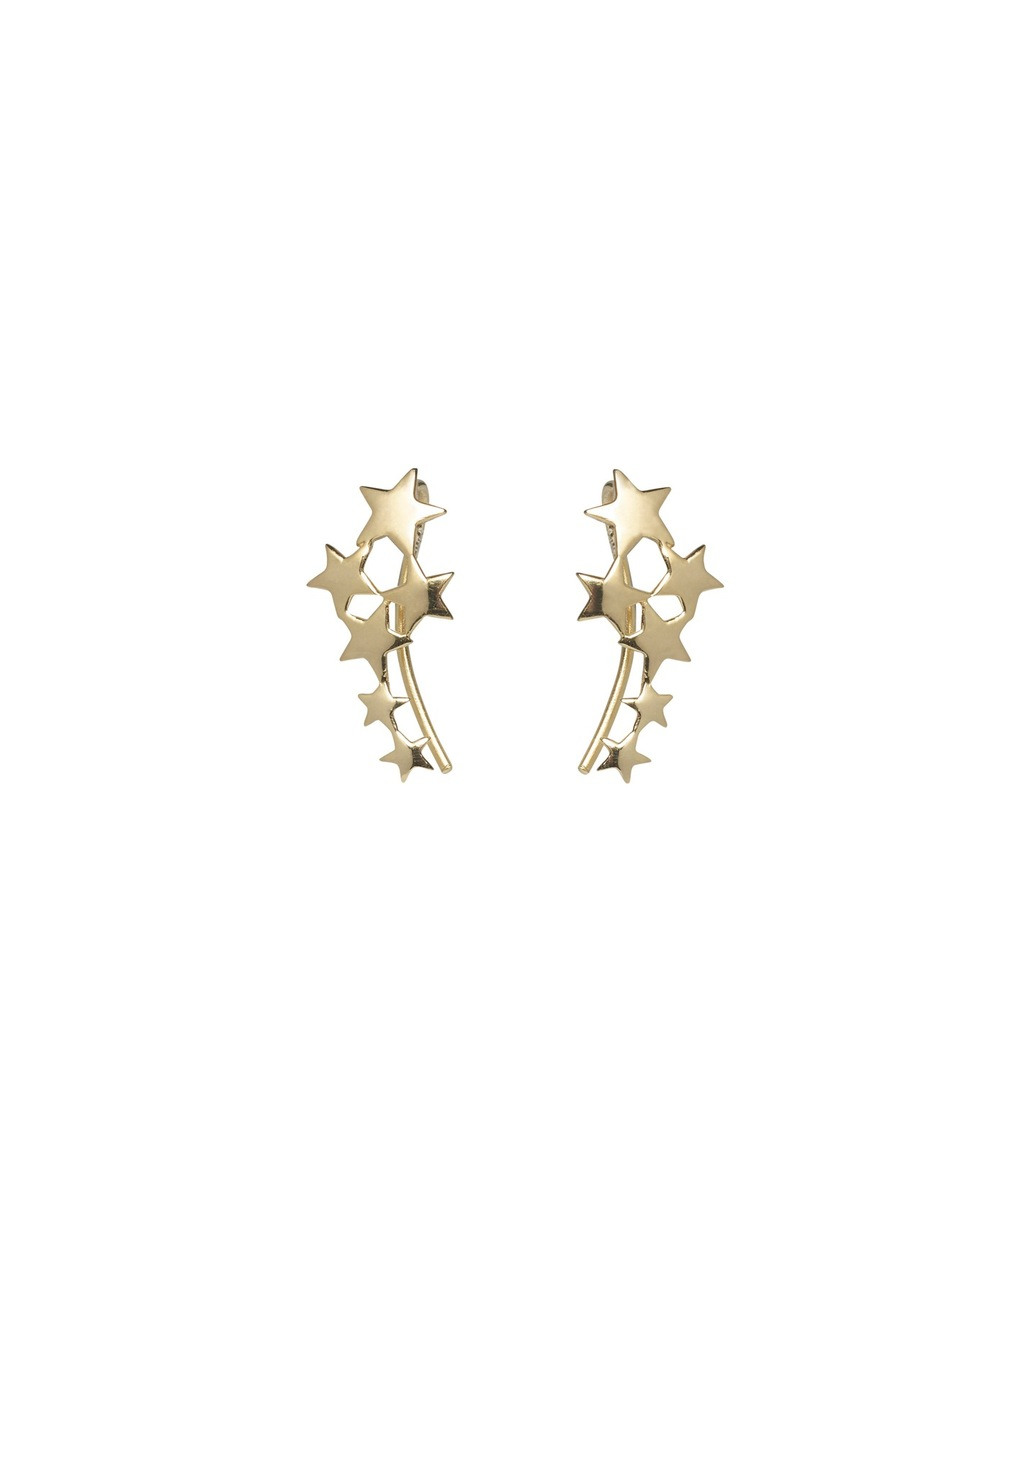 Scatter Star Ear Hooks - predominant colour: gold; occasions: casual, creative work; length: long; size: standard; material: chain/metal; fastening: pierced; finish: metallic; style: ear cuffs; season: a/w 2016; wardrobe: highlight